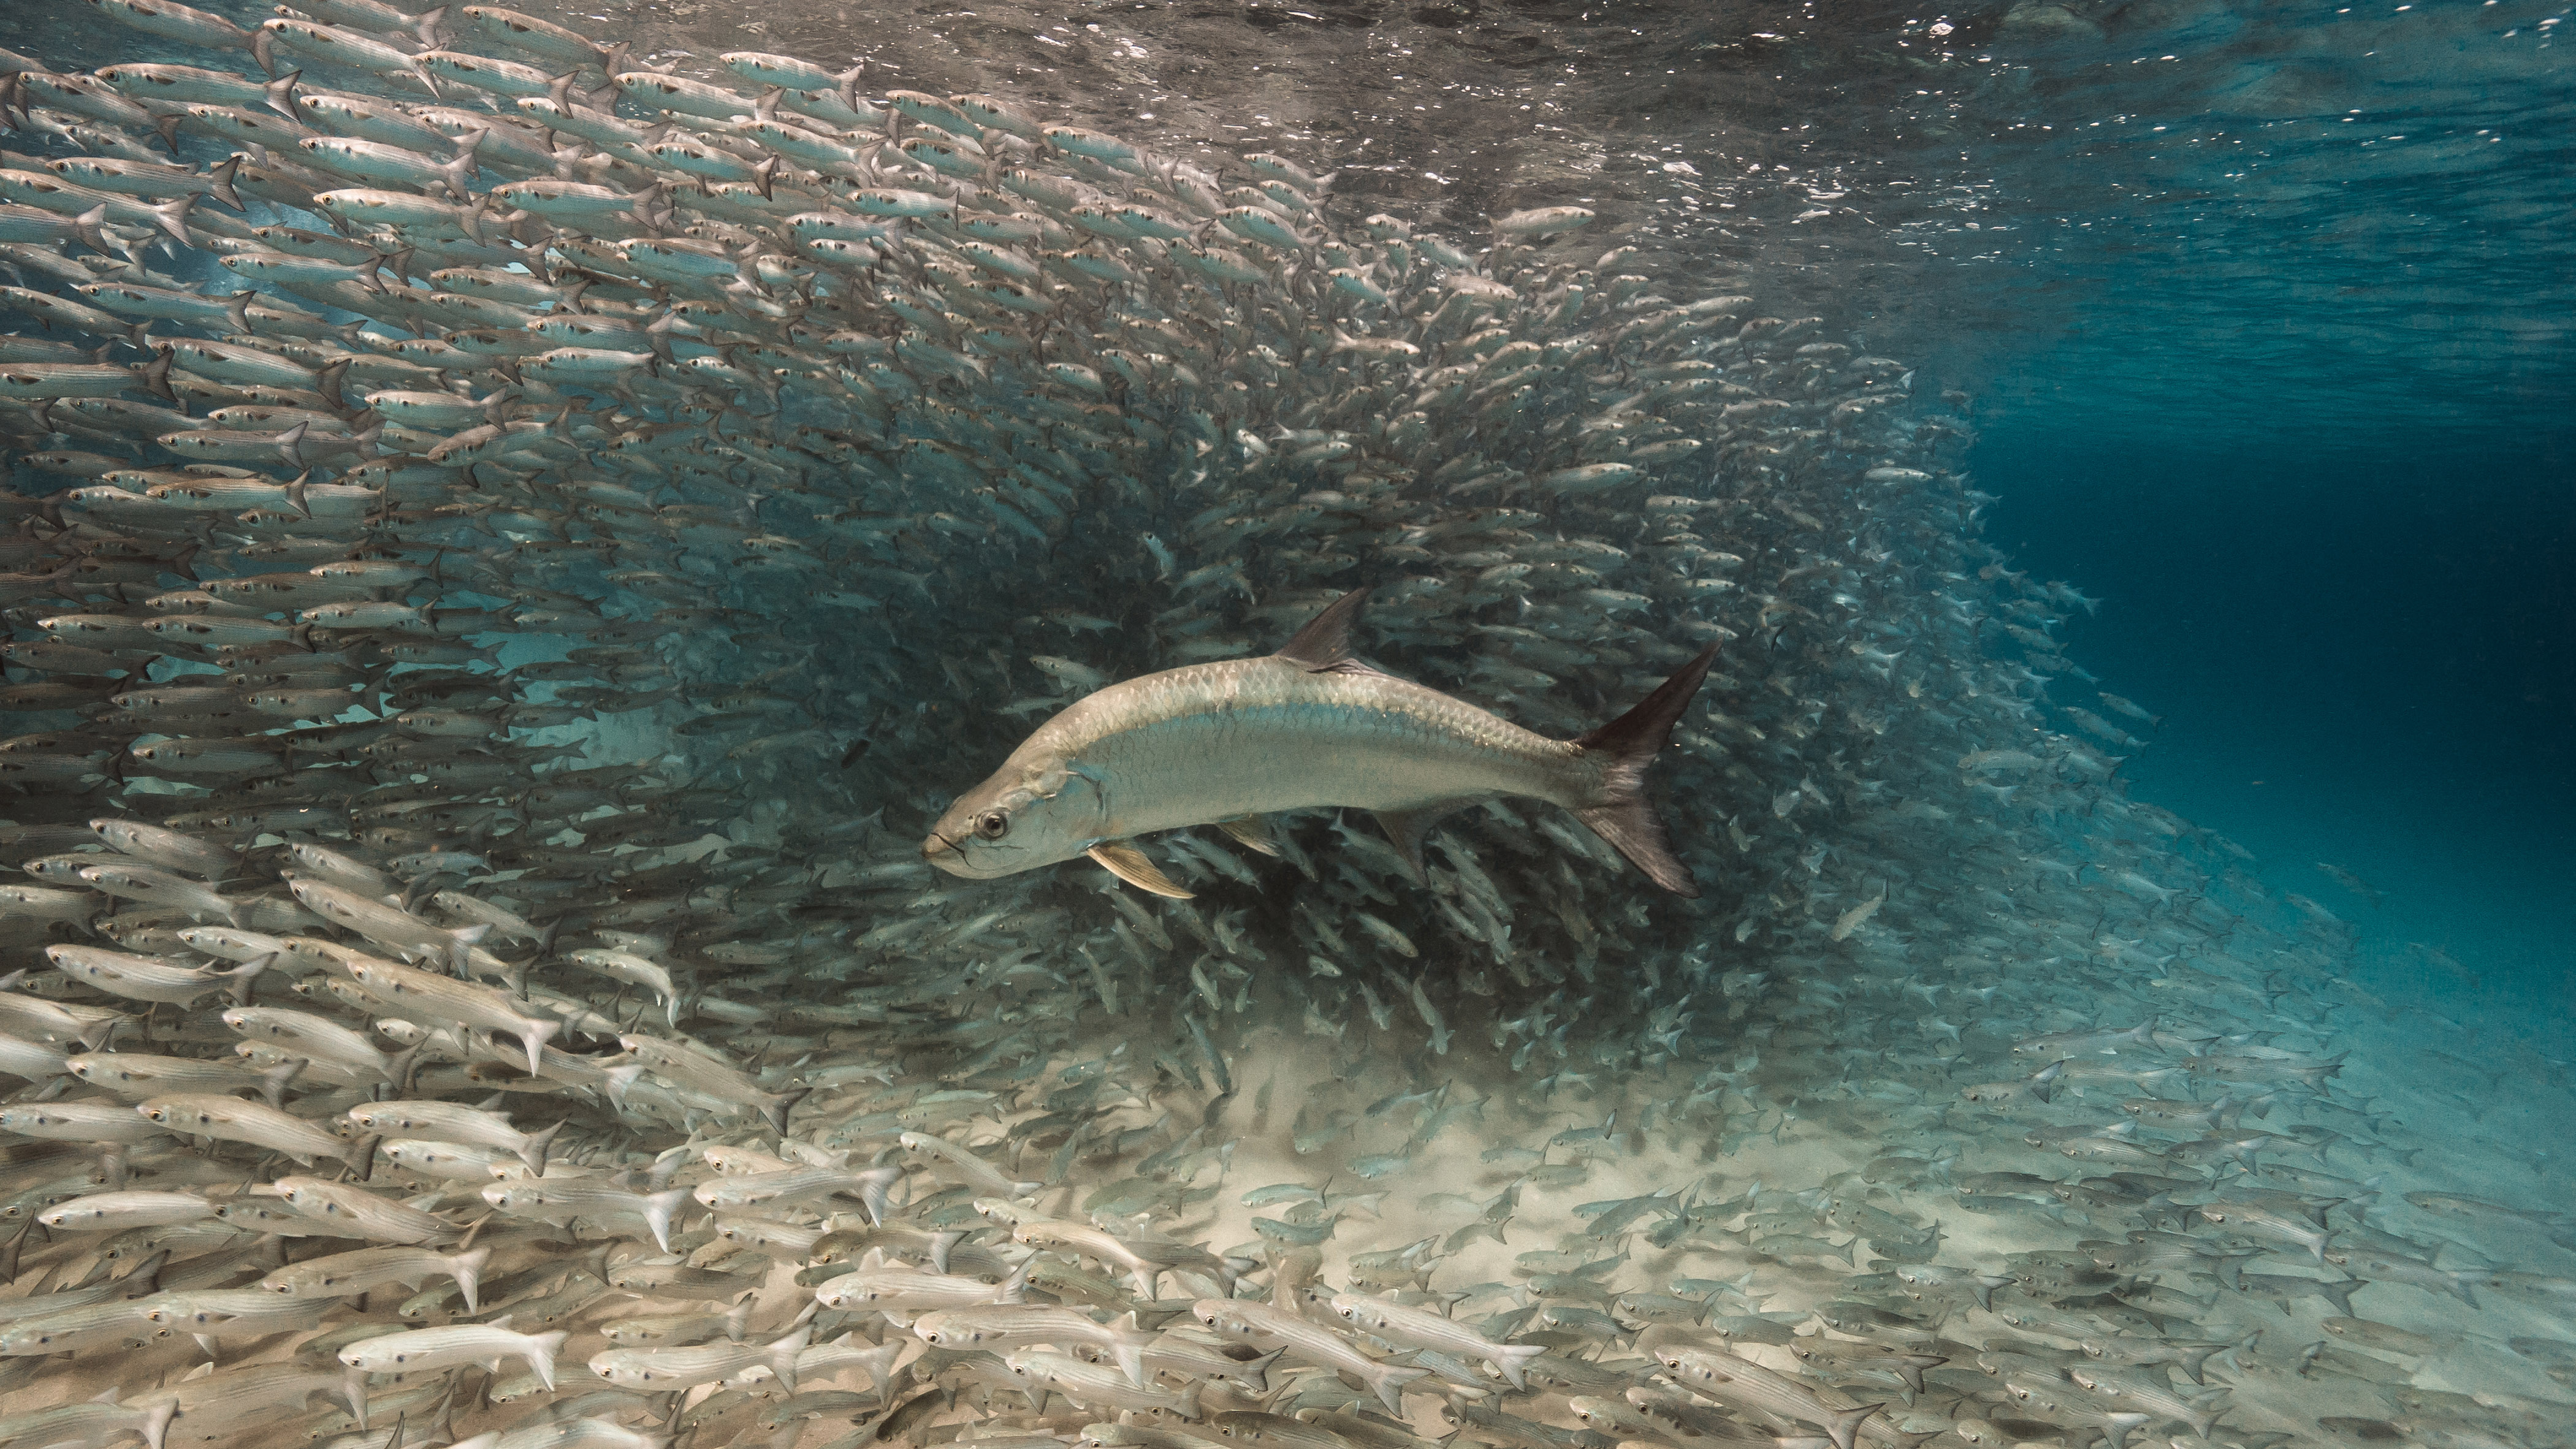 "A swing and a miss for this tarpon. The mullet rely on safety in numbers, evasive maneuvers, and ""€œswamping,""€ or overwhelming the predator'€™s ability to identify and attack a single individual. Fish that prey on forage species typically catch food just once in every 10 tries. Conversely, schooling forage fish are easy targets for nets, which makes them vulnerable to overfishing."